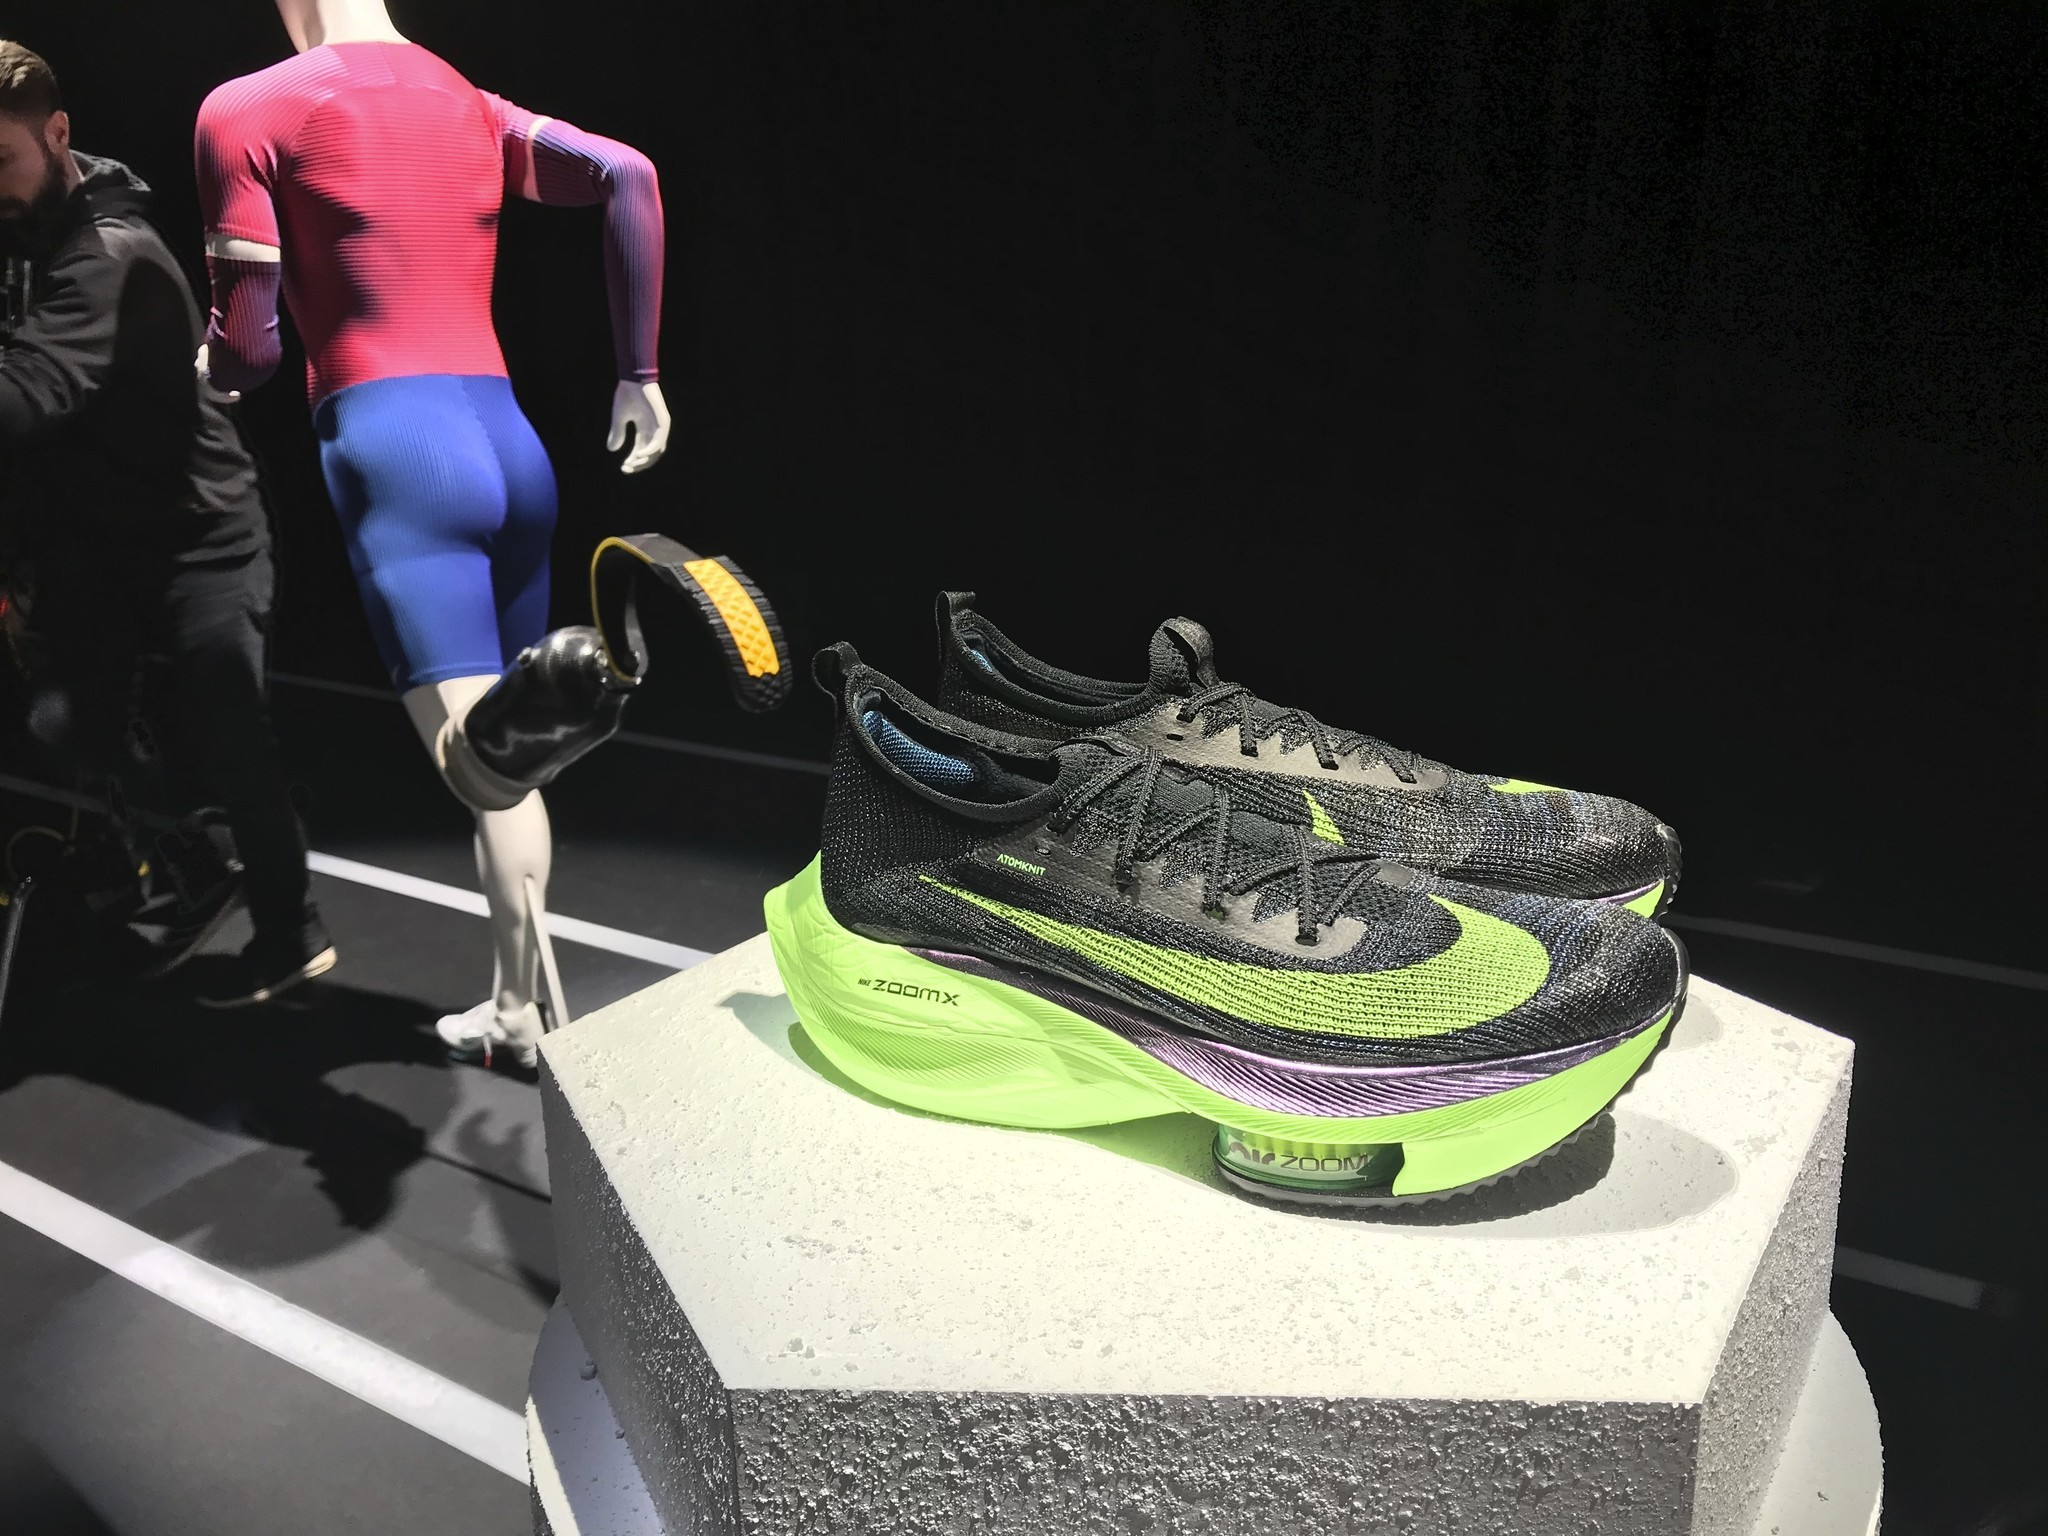 Nike will release its Alphafly shoe despite controversy